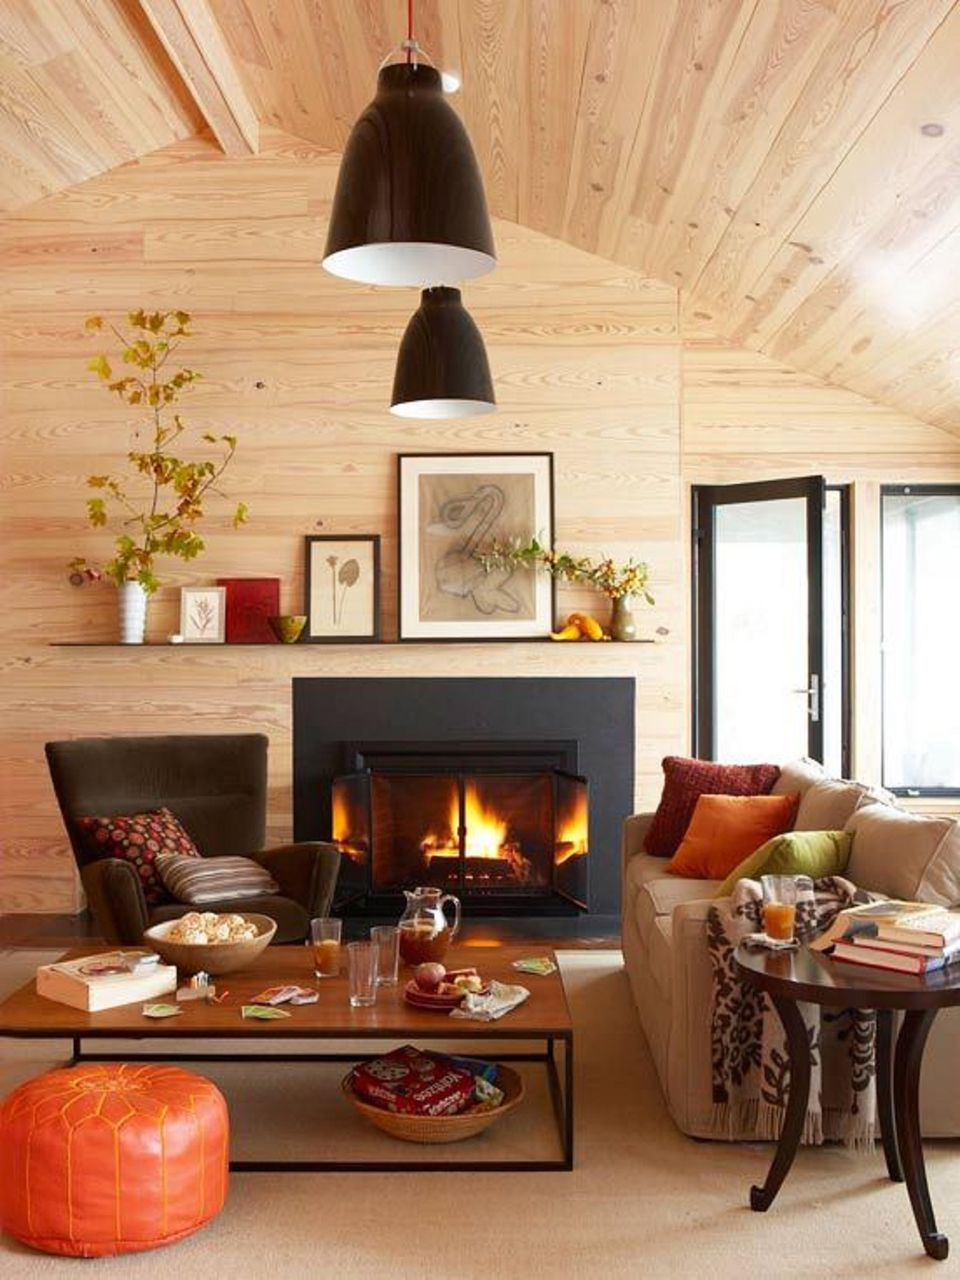 Home Decorating Ideas Farmhouse Nice 99 Modern Farmhouse: 24 Creative Fall Harvest Home Decor Ideas